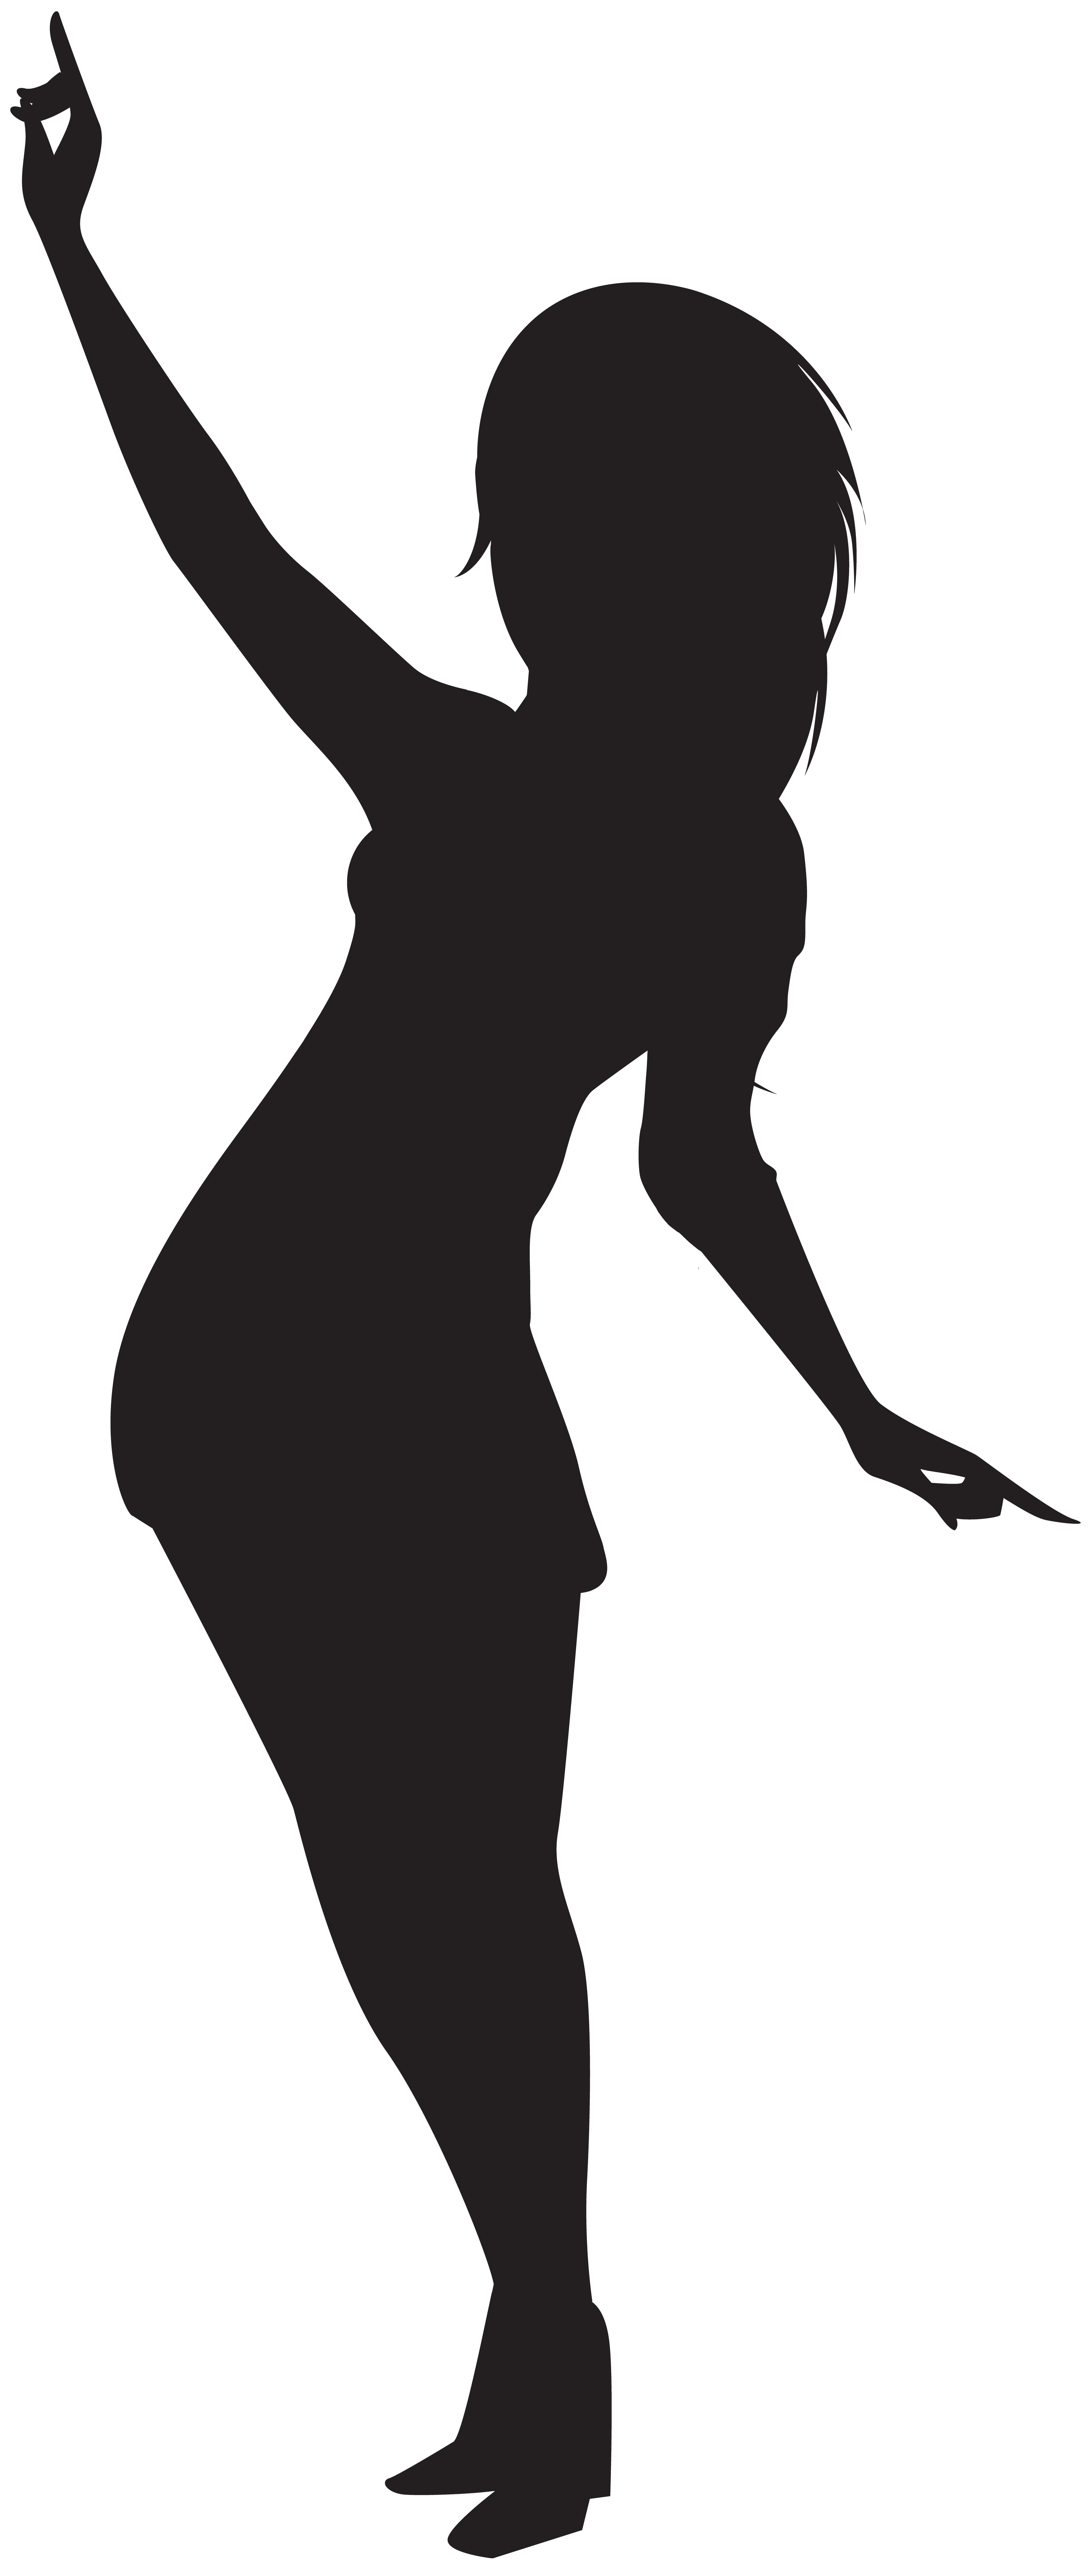 Girls silhouette clipart png free library Girl Silhouette Clipart | Free download best Girl Silhouette Clipart ... png free library